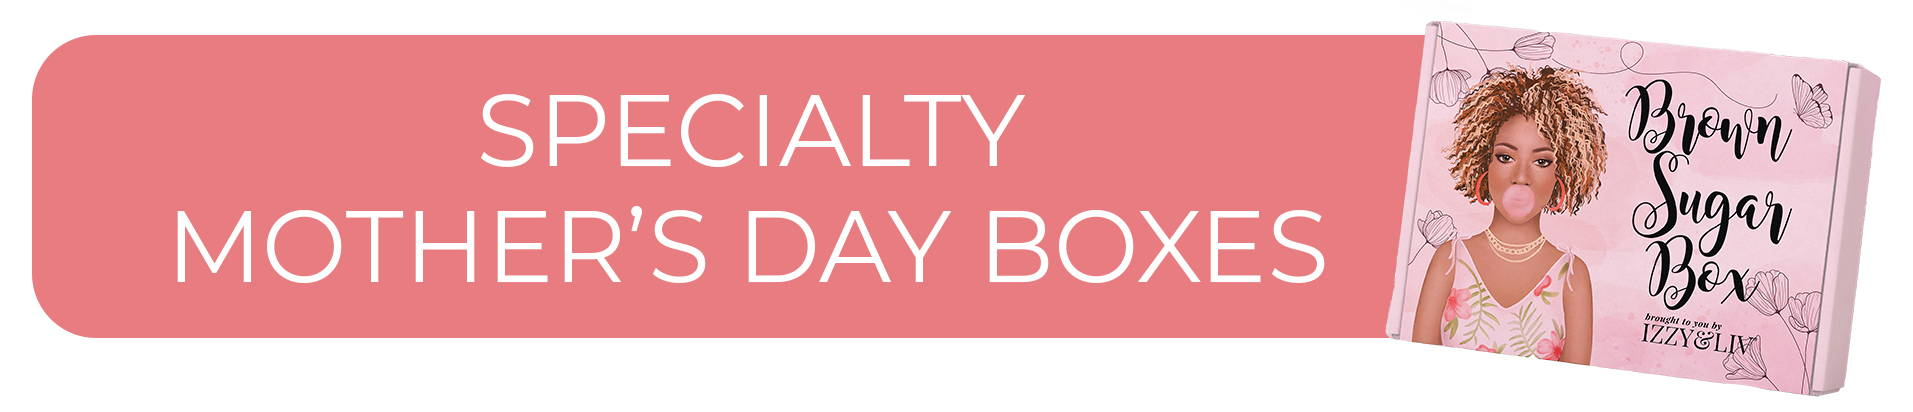 Specialty Mother's Day Boxes - Header